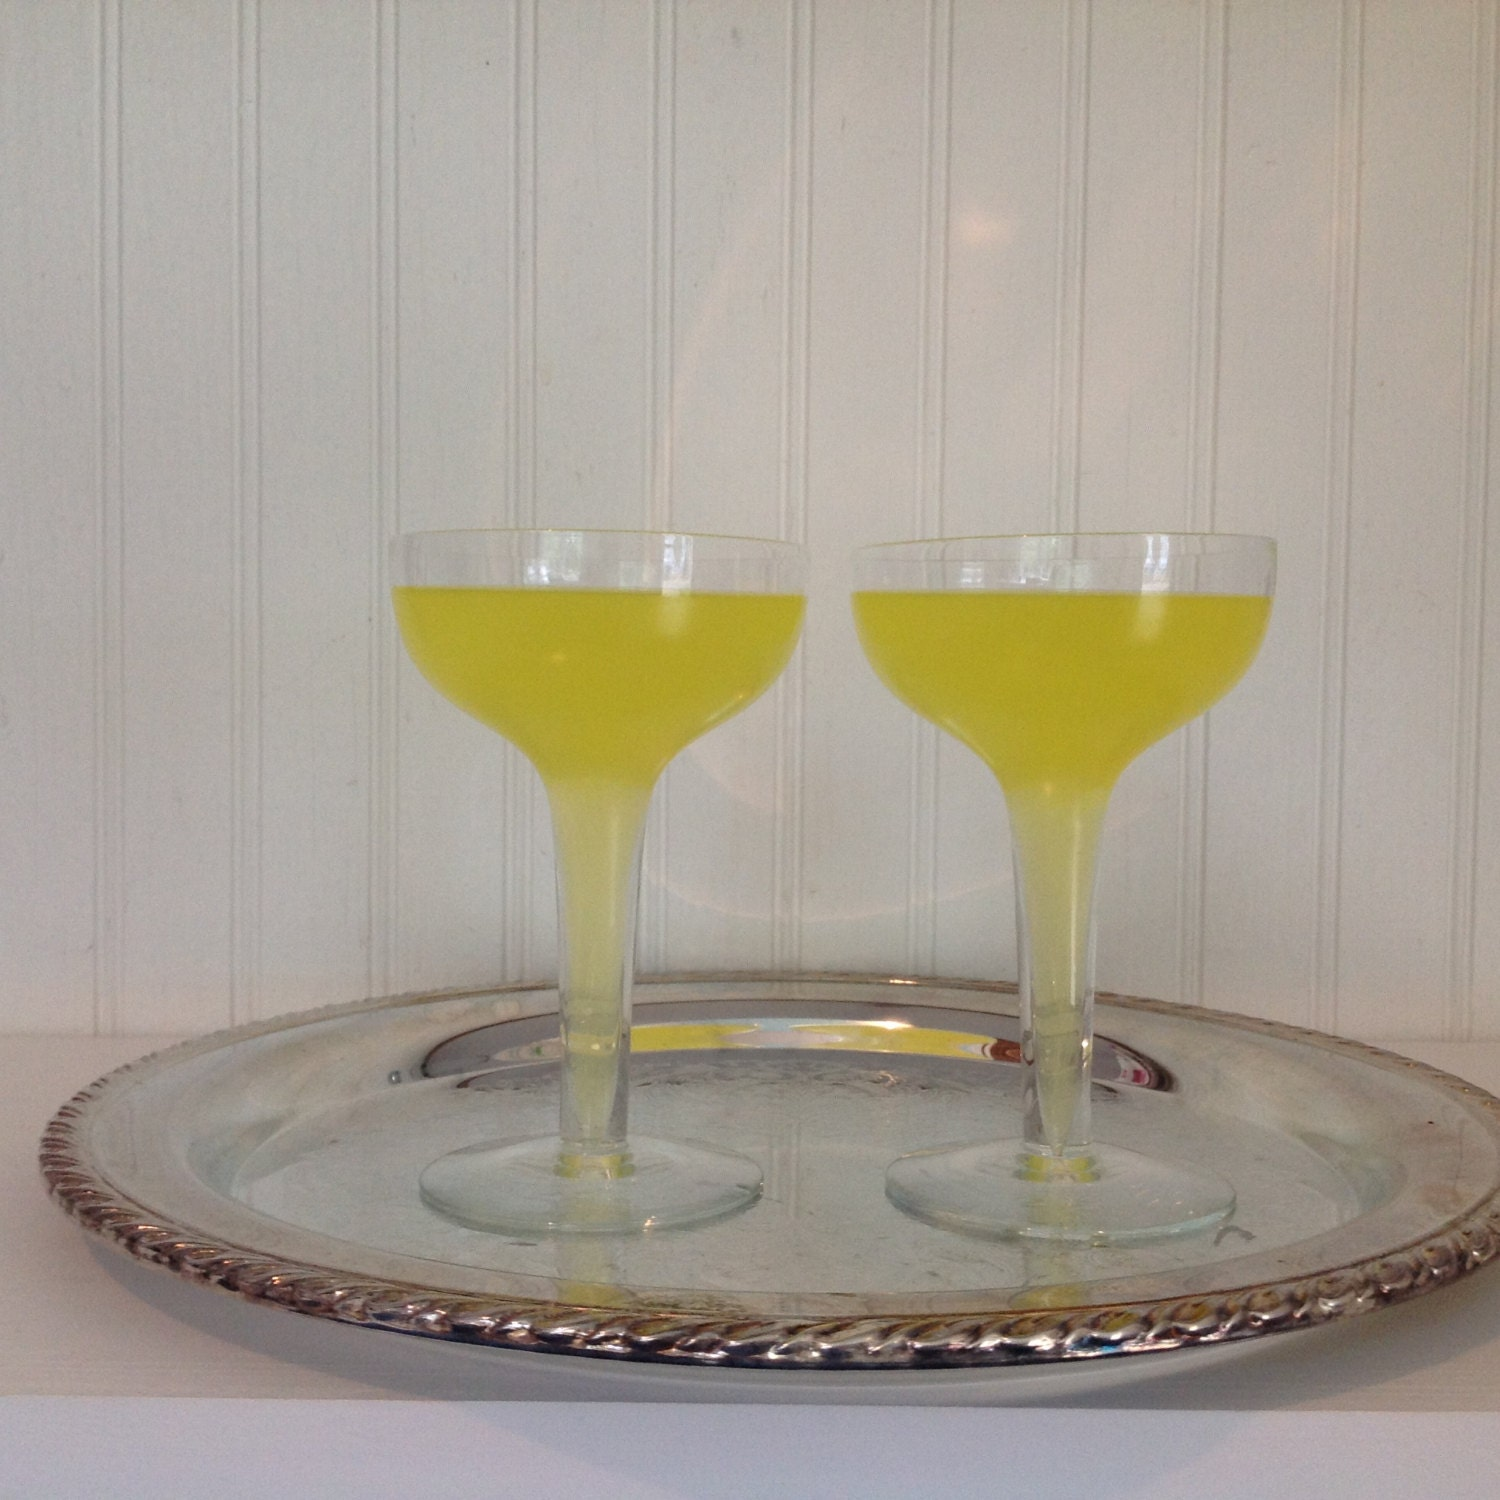 Vintage hollow stem champagne glasses by southernprettys on etsy - Hollow stem champagne glasses ...